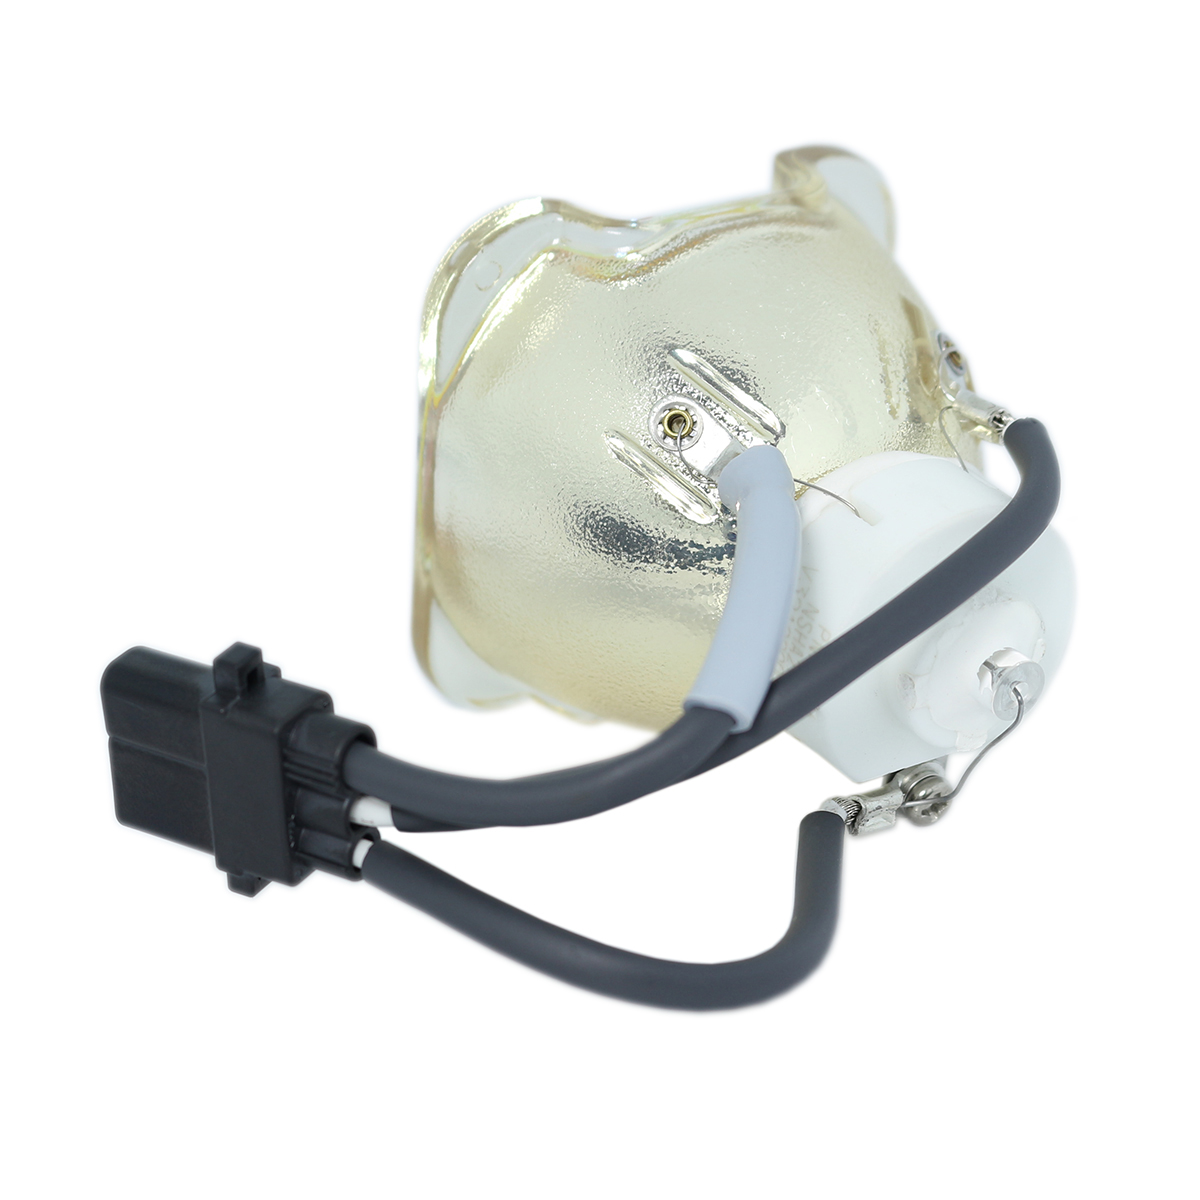 Compatible Bare Bulb TLPLW28G for TOSHIBA TDP-T355 TDP-T355J TDP-TW355 TDP-TW355J TDP-TW355U Projector Bulb Lamp Without Housing compatible bare bulb tlplw13 tlp lw13 for toshiba tdp t350 tdp tw350 projector bulb lamp without housing free shipping